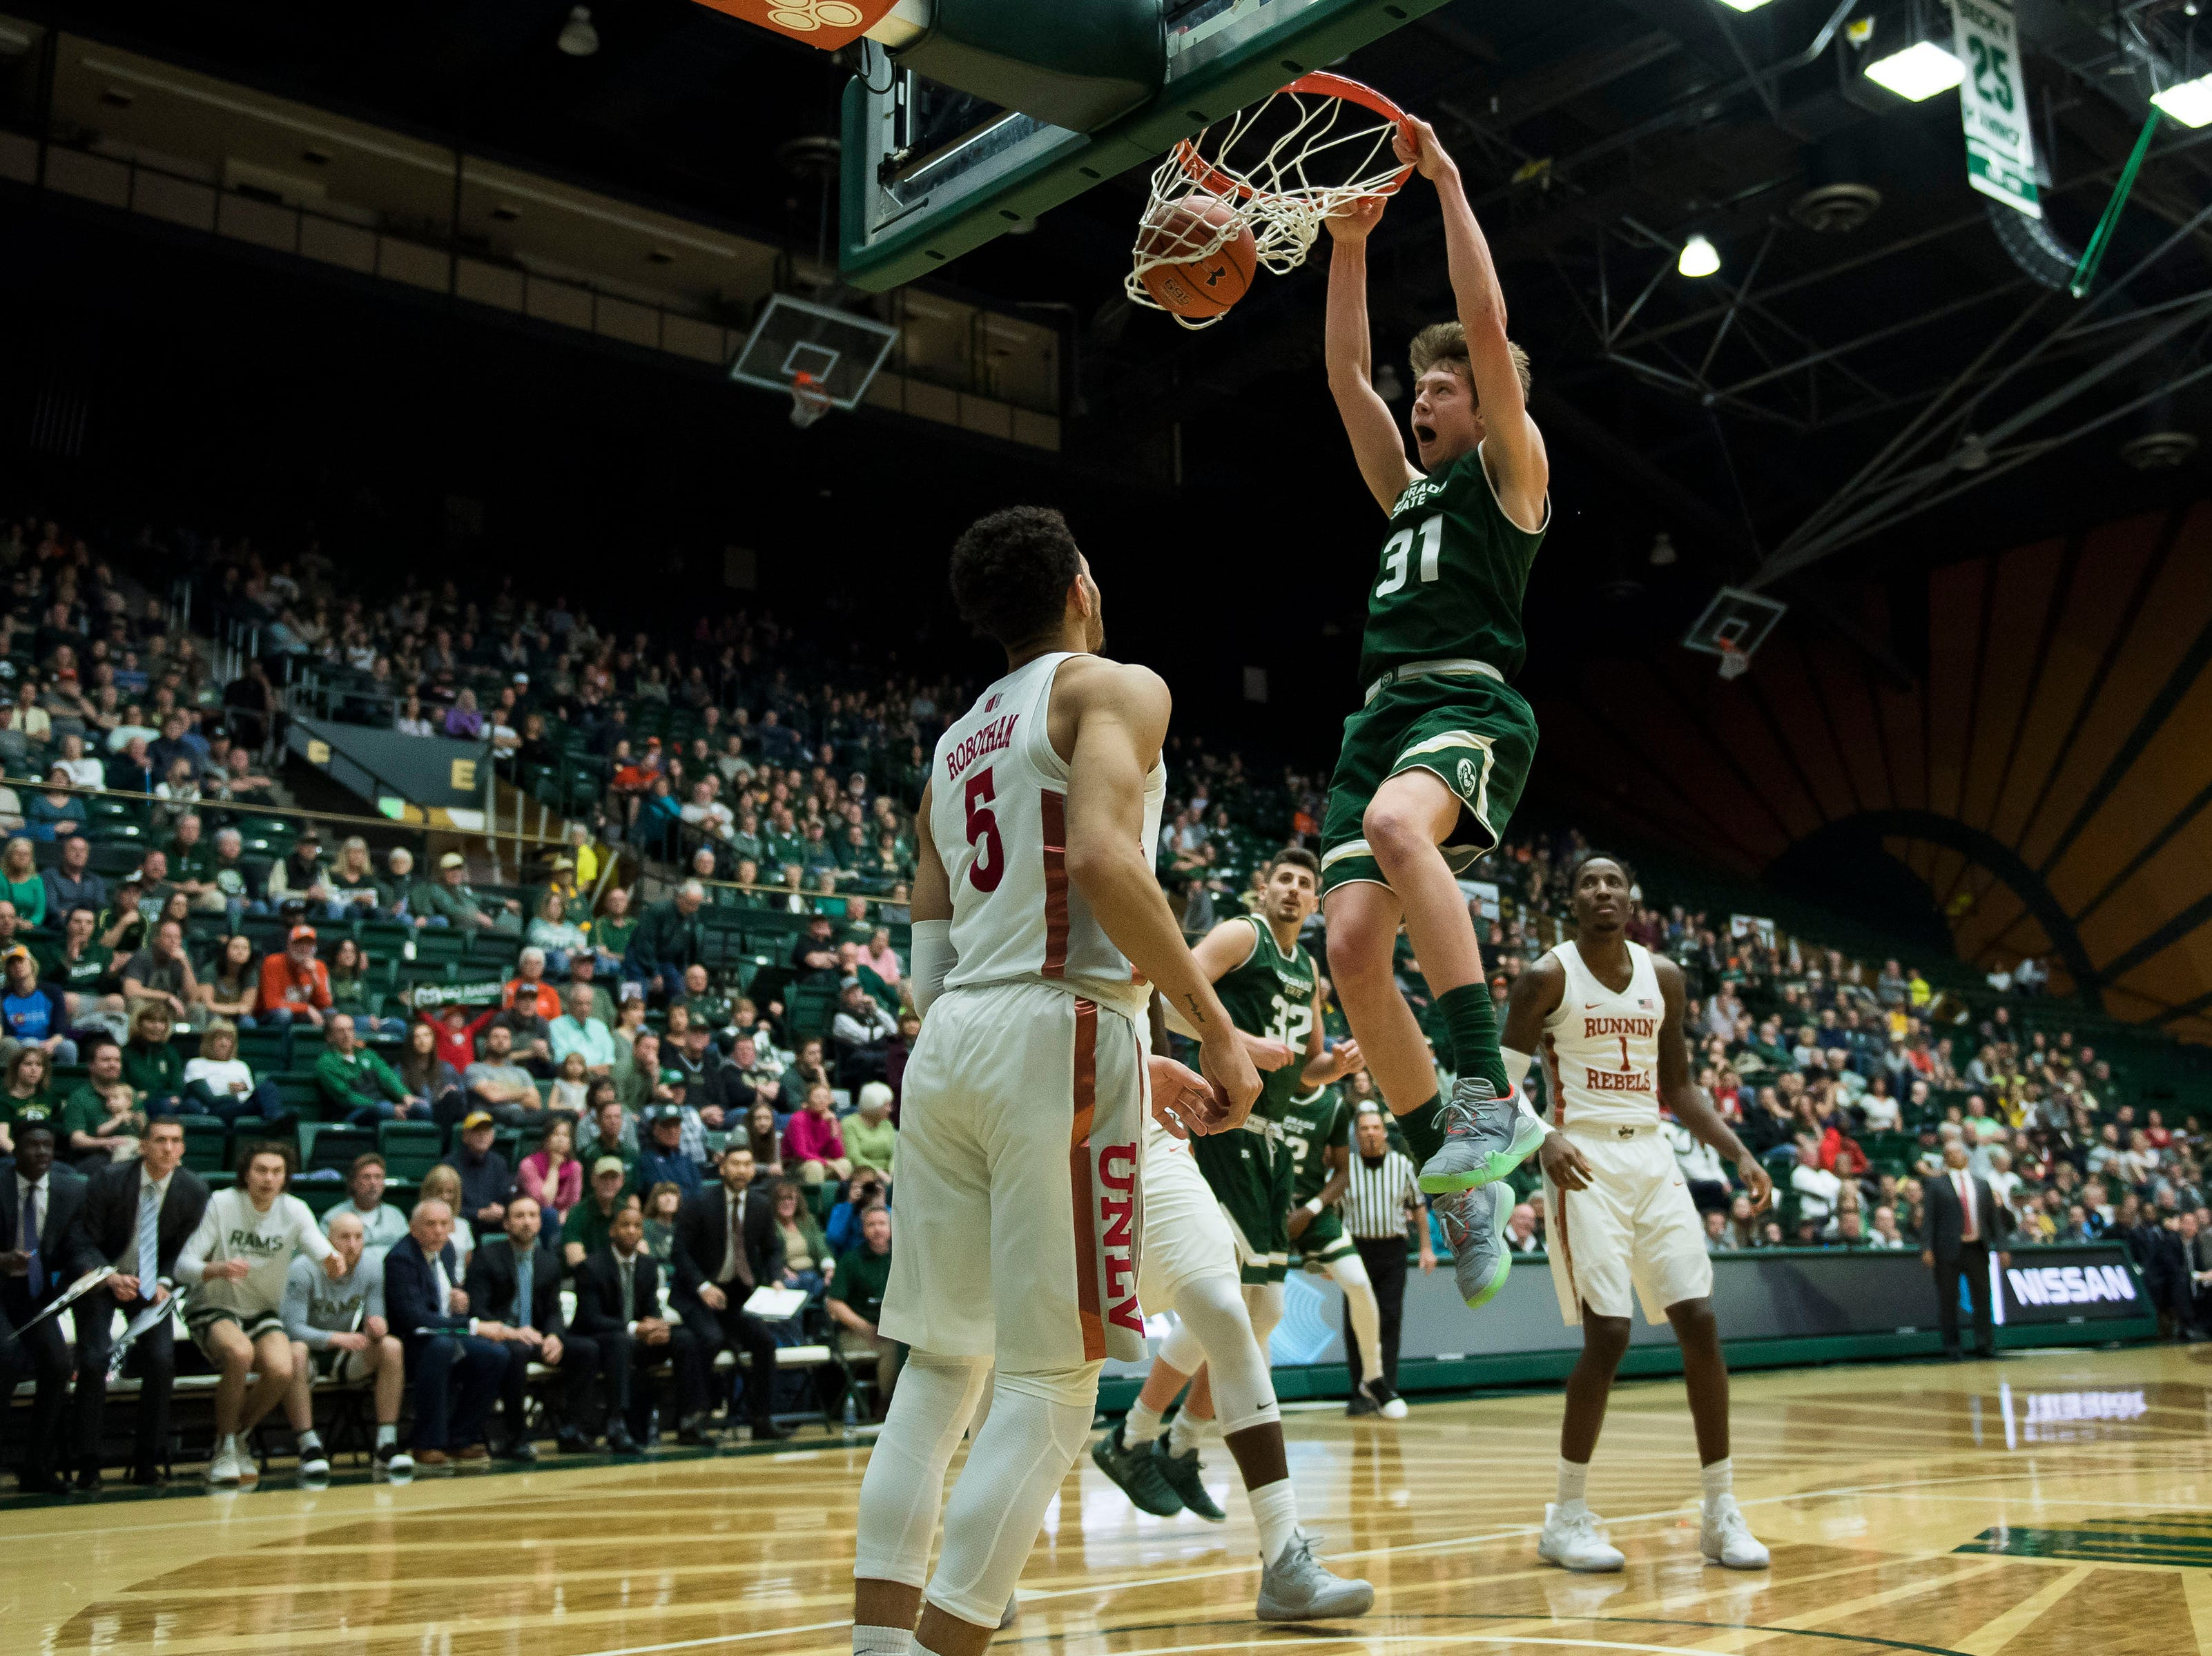 Colorado State University freshman forward Adam Thistlewood (31) dunks over University of Nevada Las Vegas senior guard Noah Robotham (5) on Saturday, March 9, 2019, at Moby Arena in Fort Collins, Colo.